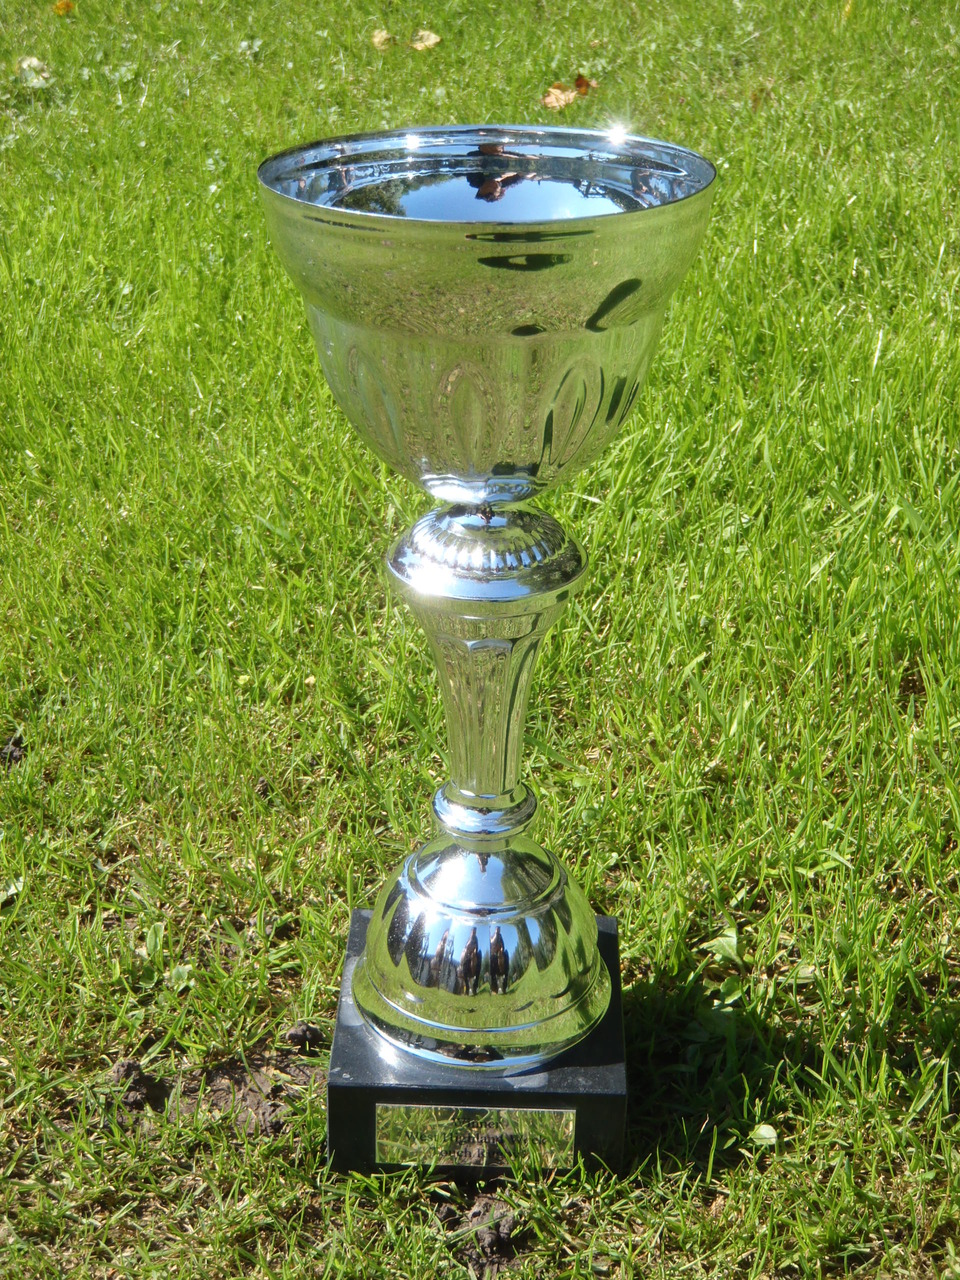 The Touch Rugby Trophy